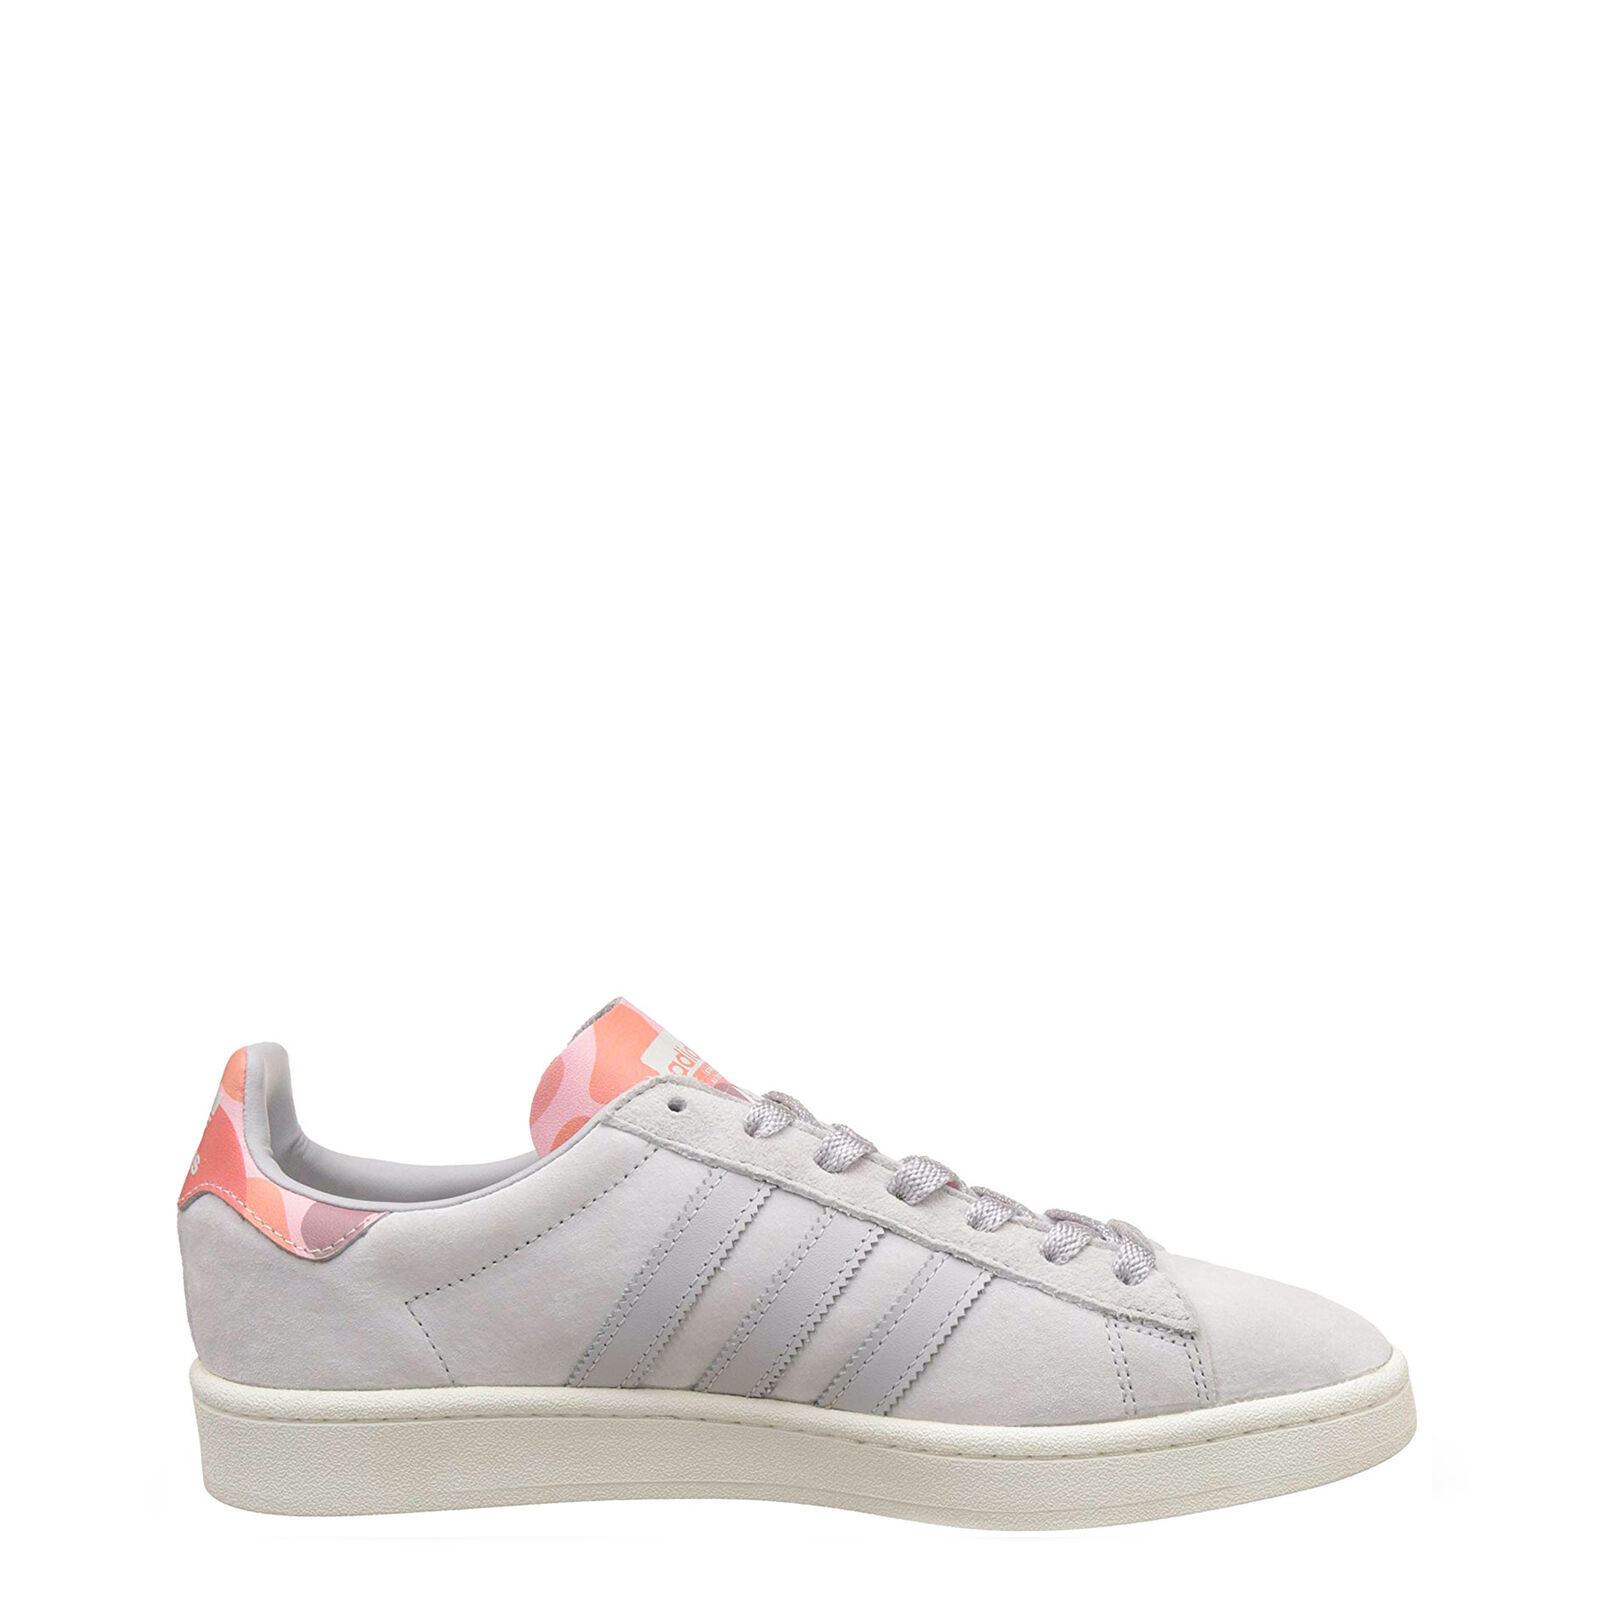 Adidas Schuhe ADULTS CAMPUS, Unisex Sneakers Weiß BB0078